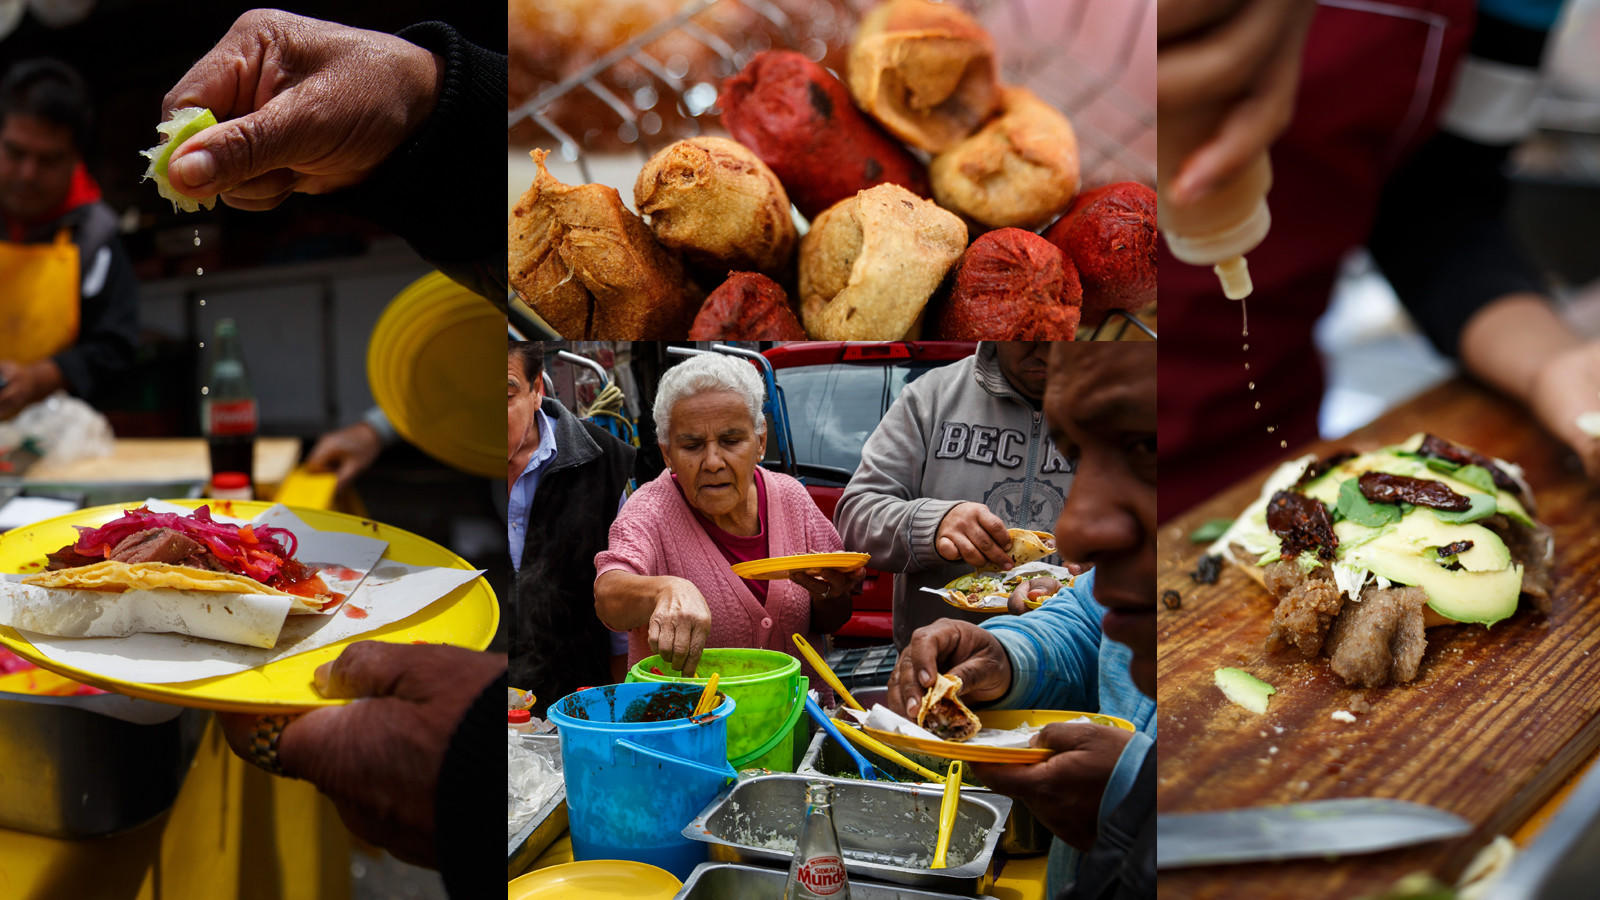 Mexico City has food vendors in just about every corner.